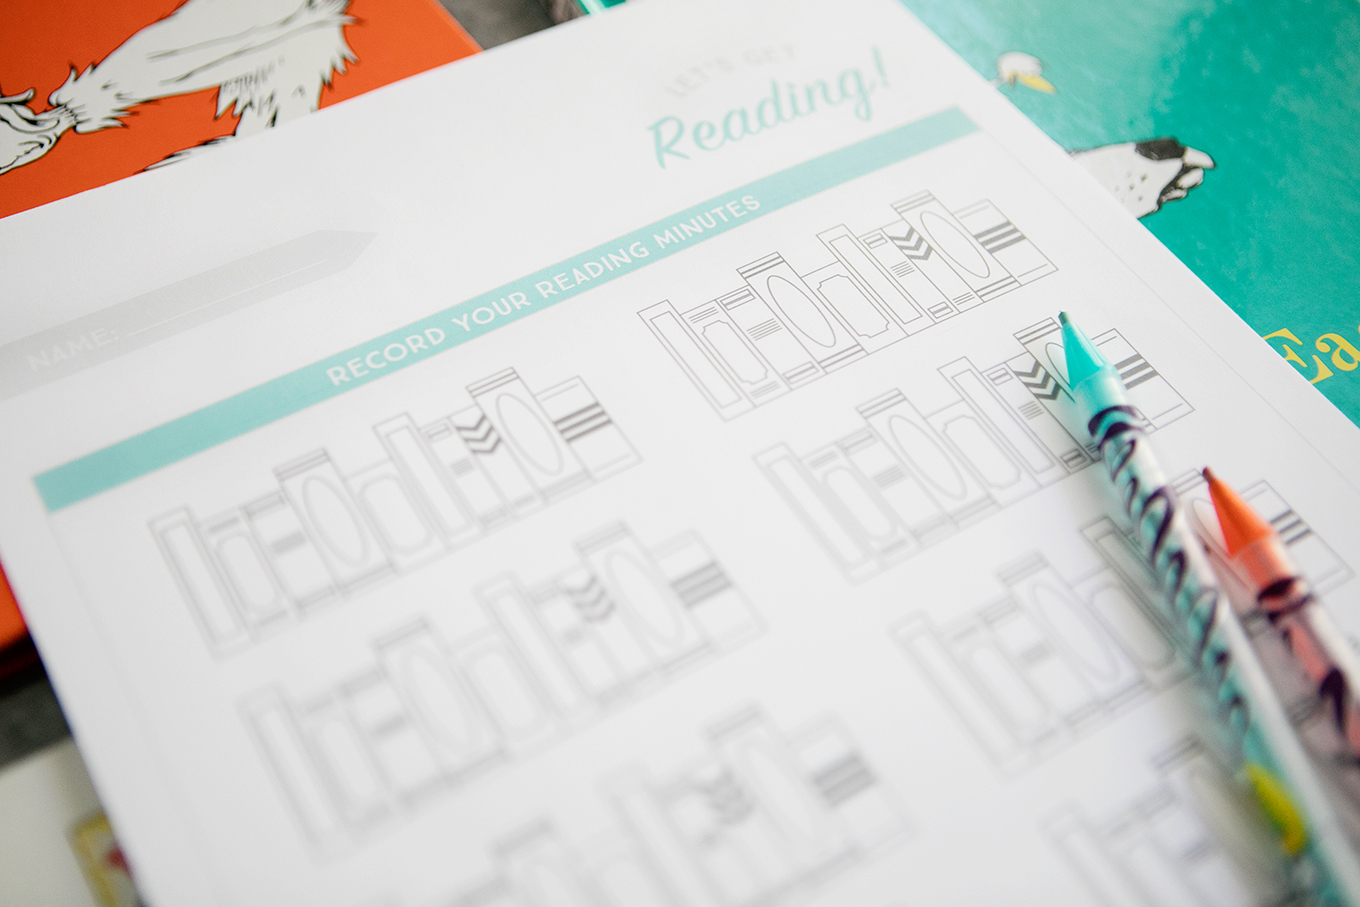 Mom's Summer Reading Challenge is a fun way to get your kids excited about reading all the books this summer! Use our printable reading log and the ideas in this post to encourage your kids to meet their reading goals.